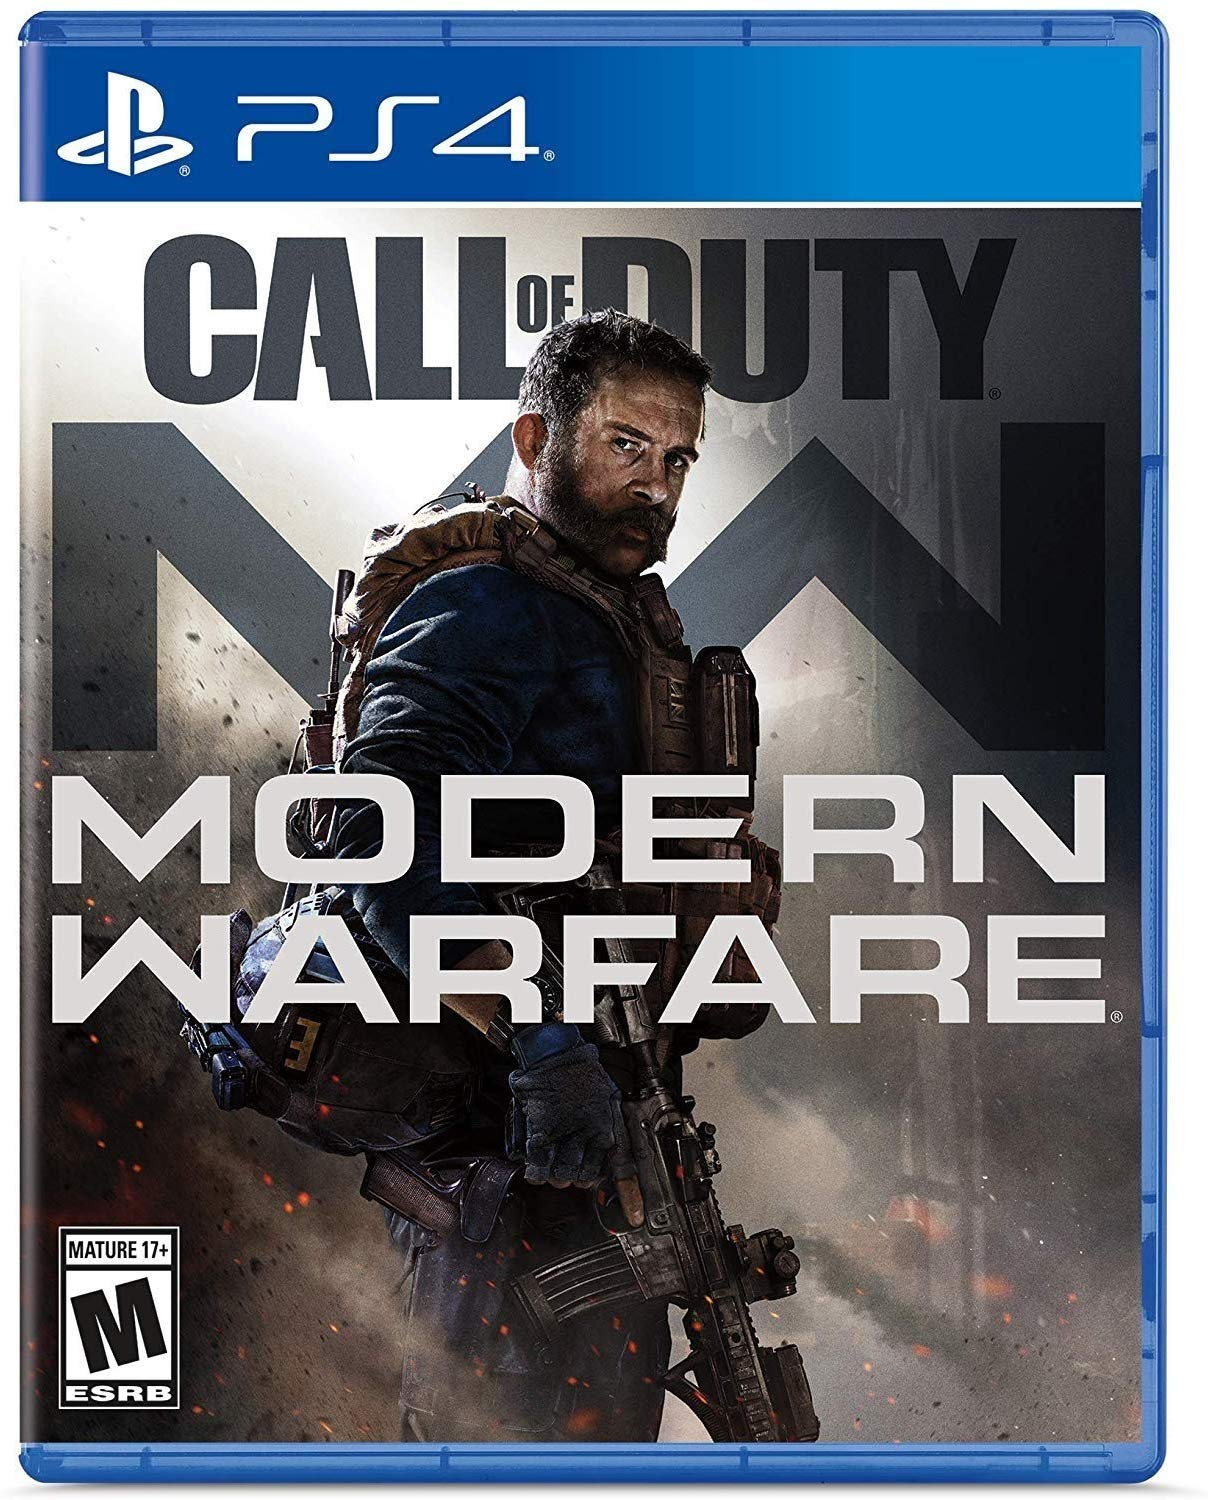 Call of Duty: Modern Warfare, Activision, PlayStation 4, 047875884359